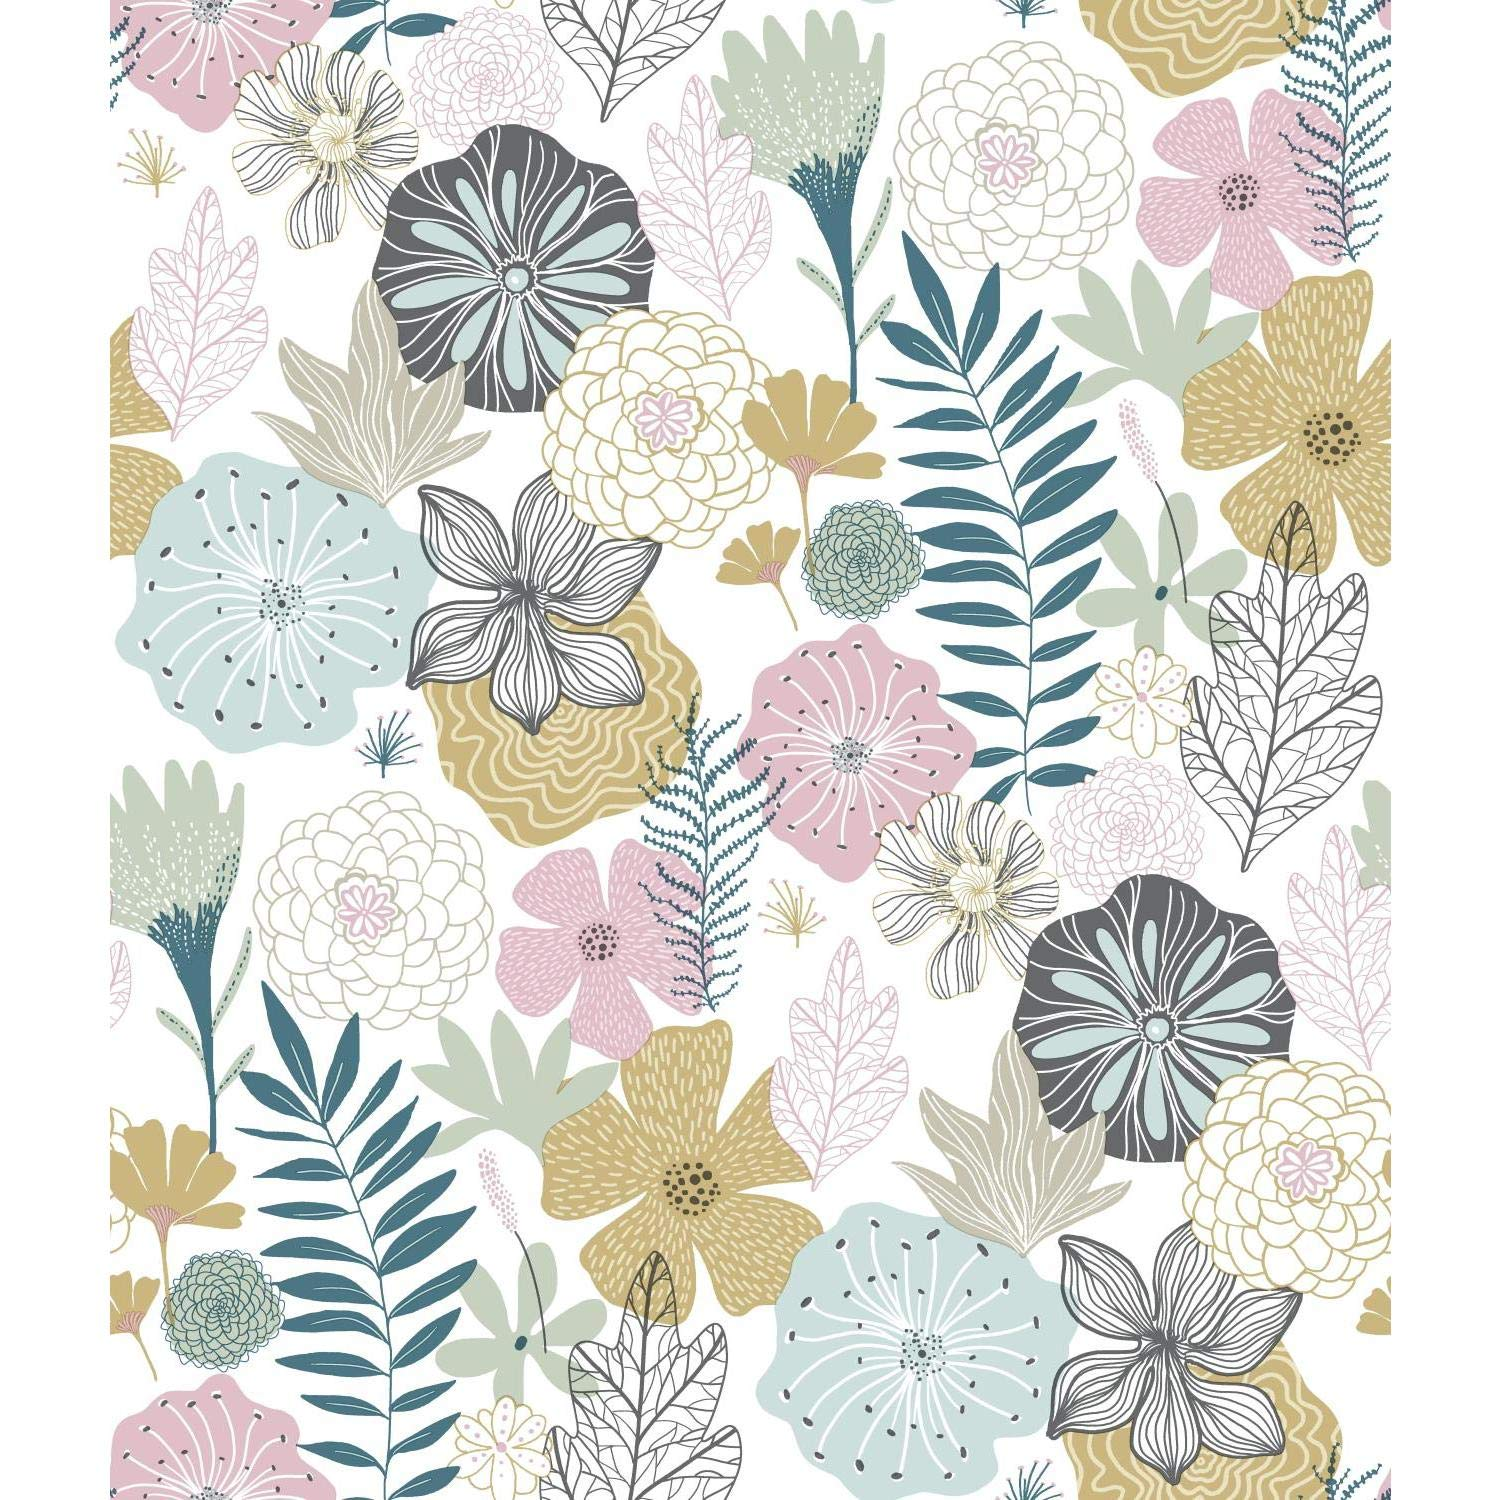 RoomMates Perennial Blooms Peel and Stick Wallpaper by RoomMates